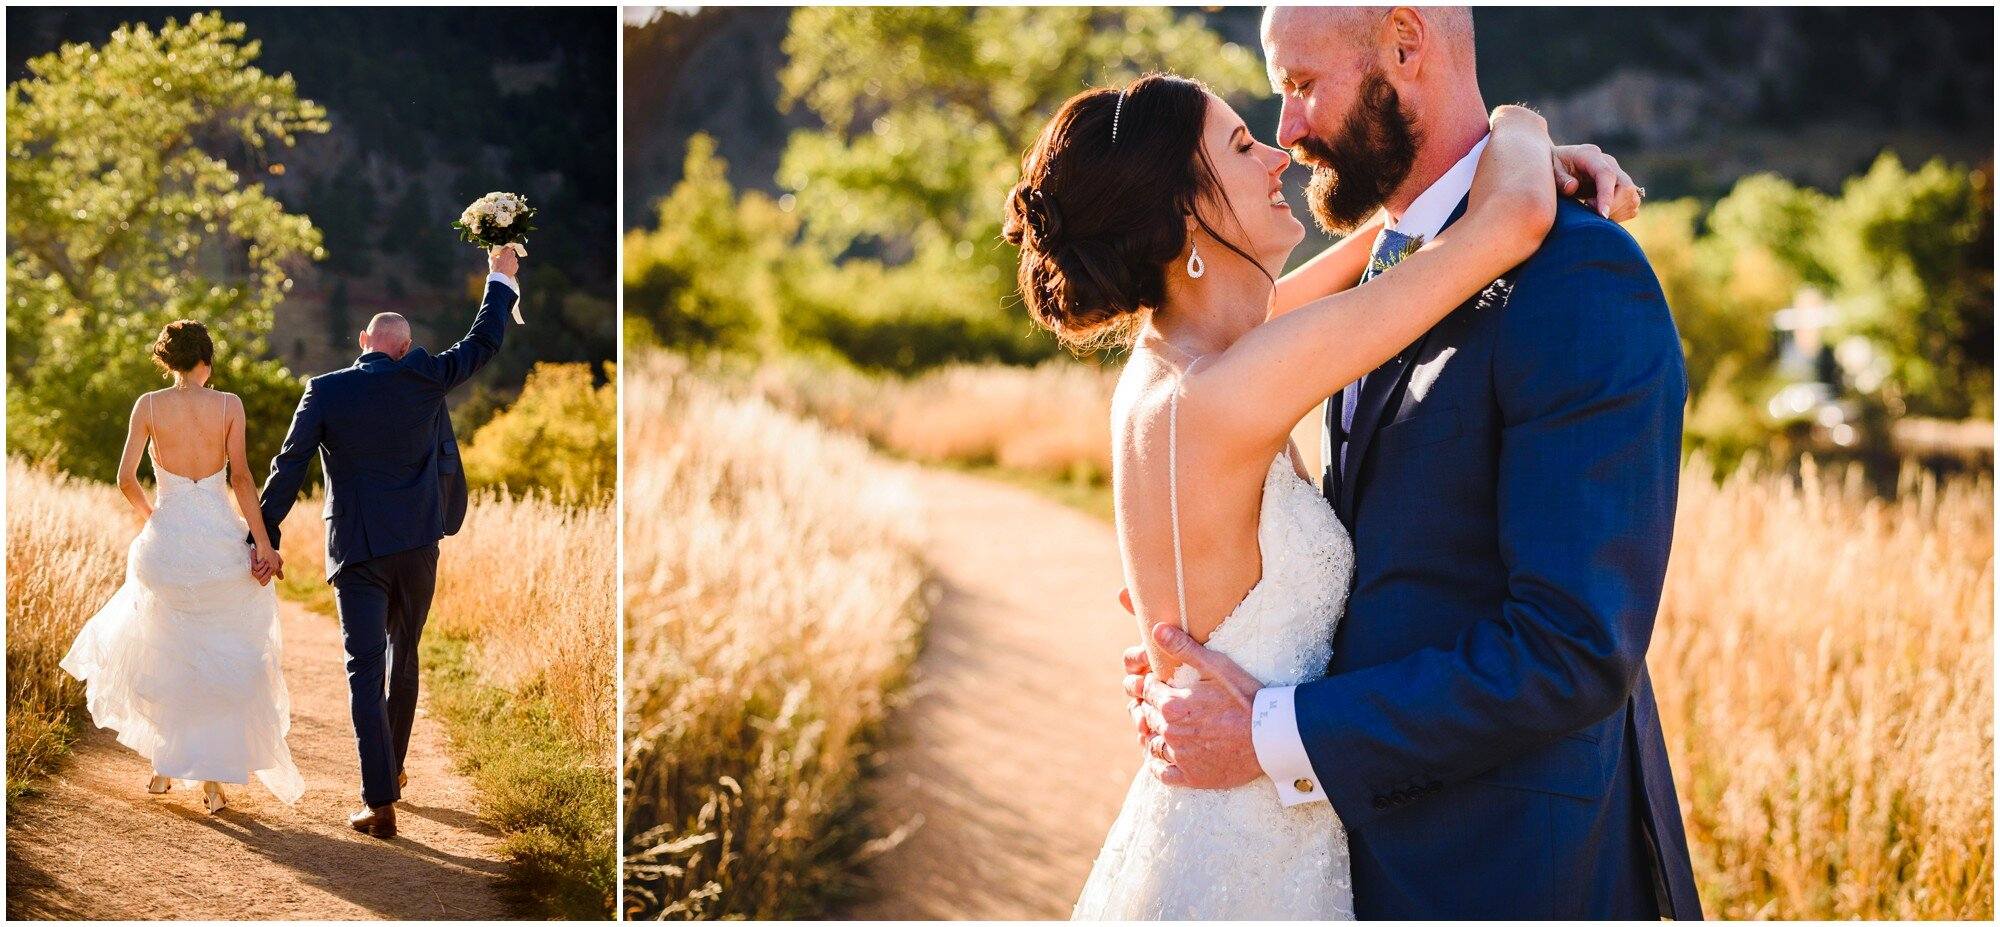 sunset wedding couple photos Chatauqua Park Boulder Colorado